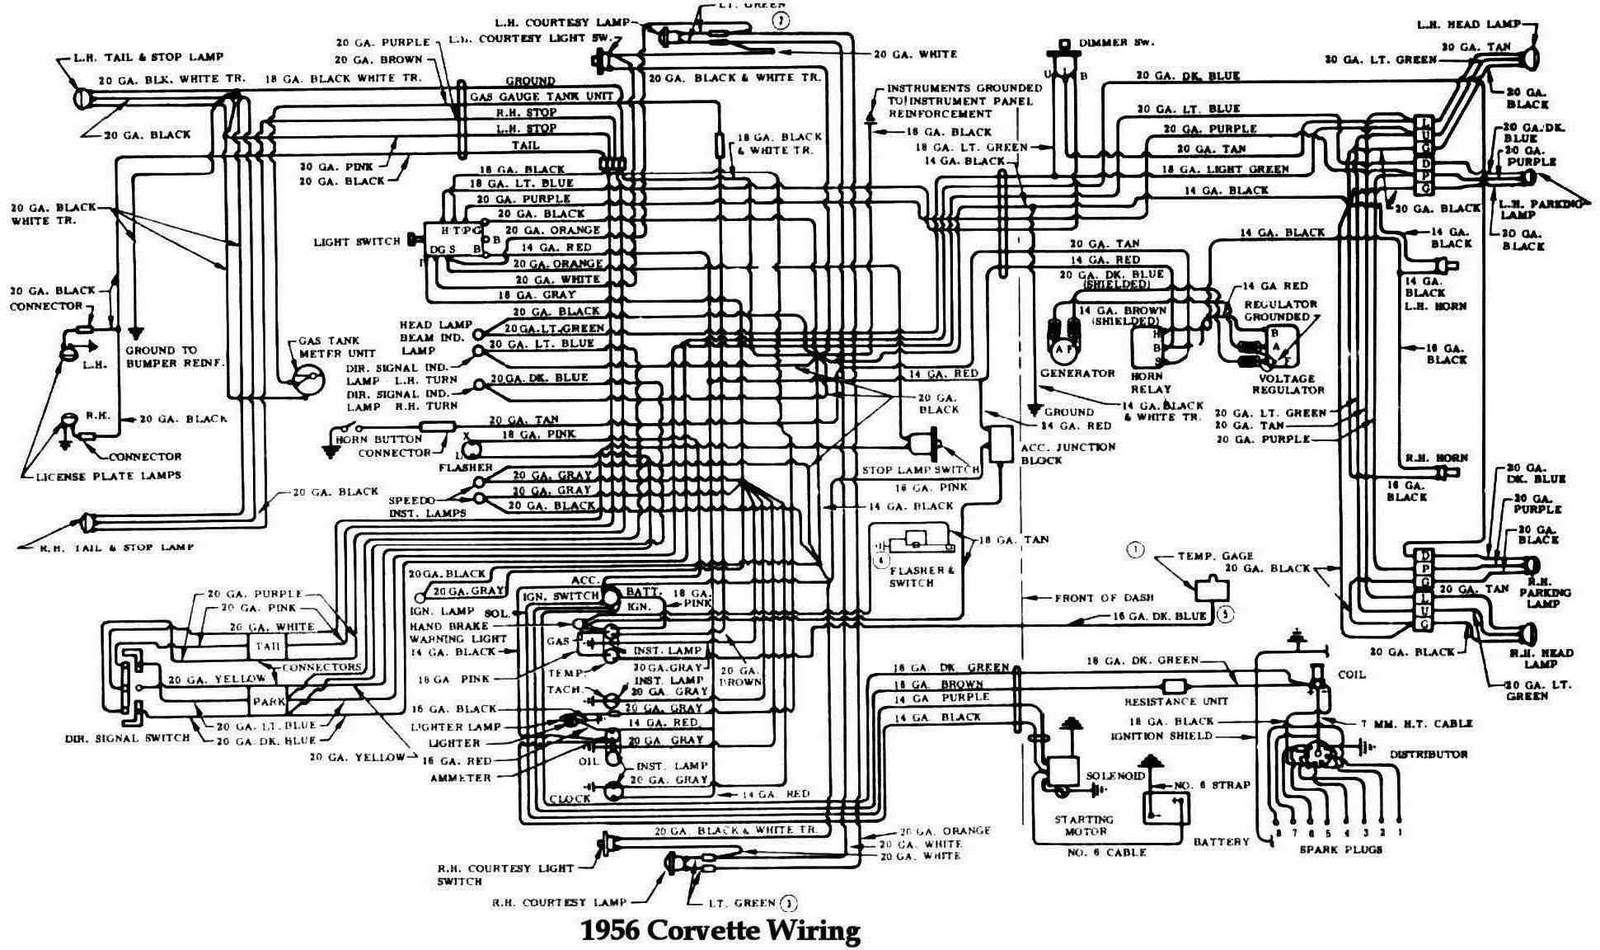 diagram] 1968 corvette horn wiring diagram full version hd quality wiring  diagram - learnbigdatabase.terrassement-de-vita.fr  learnbigdatabase.terrassement-de-vita.fr